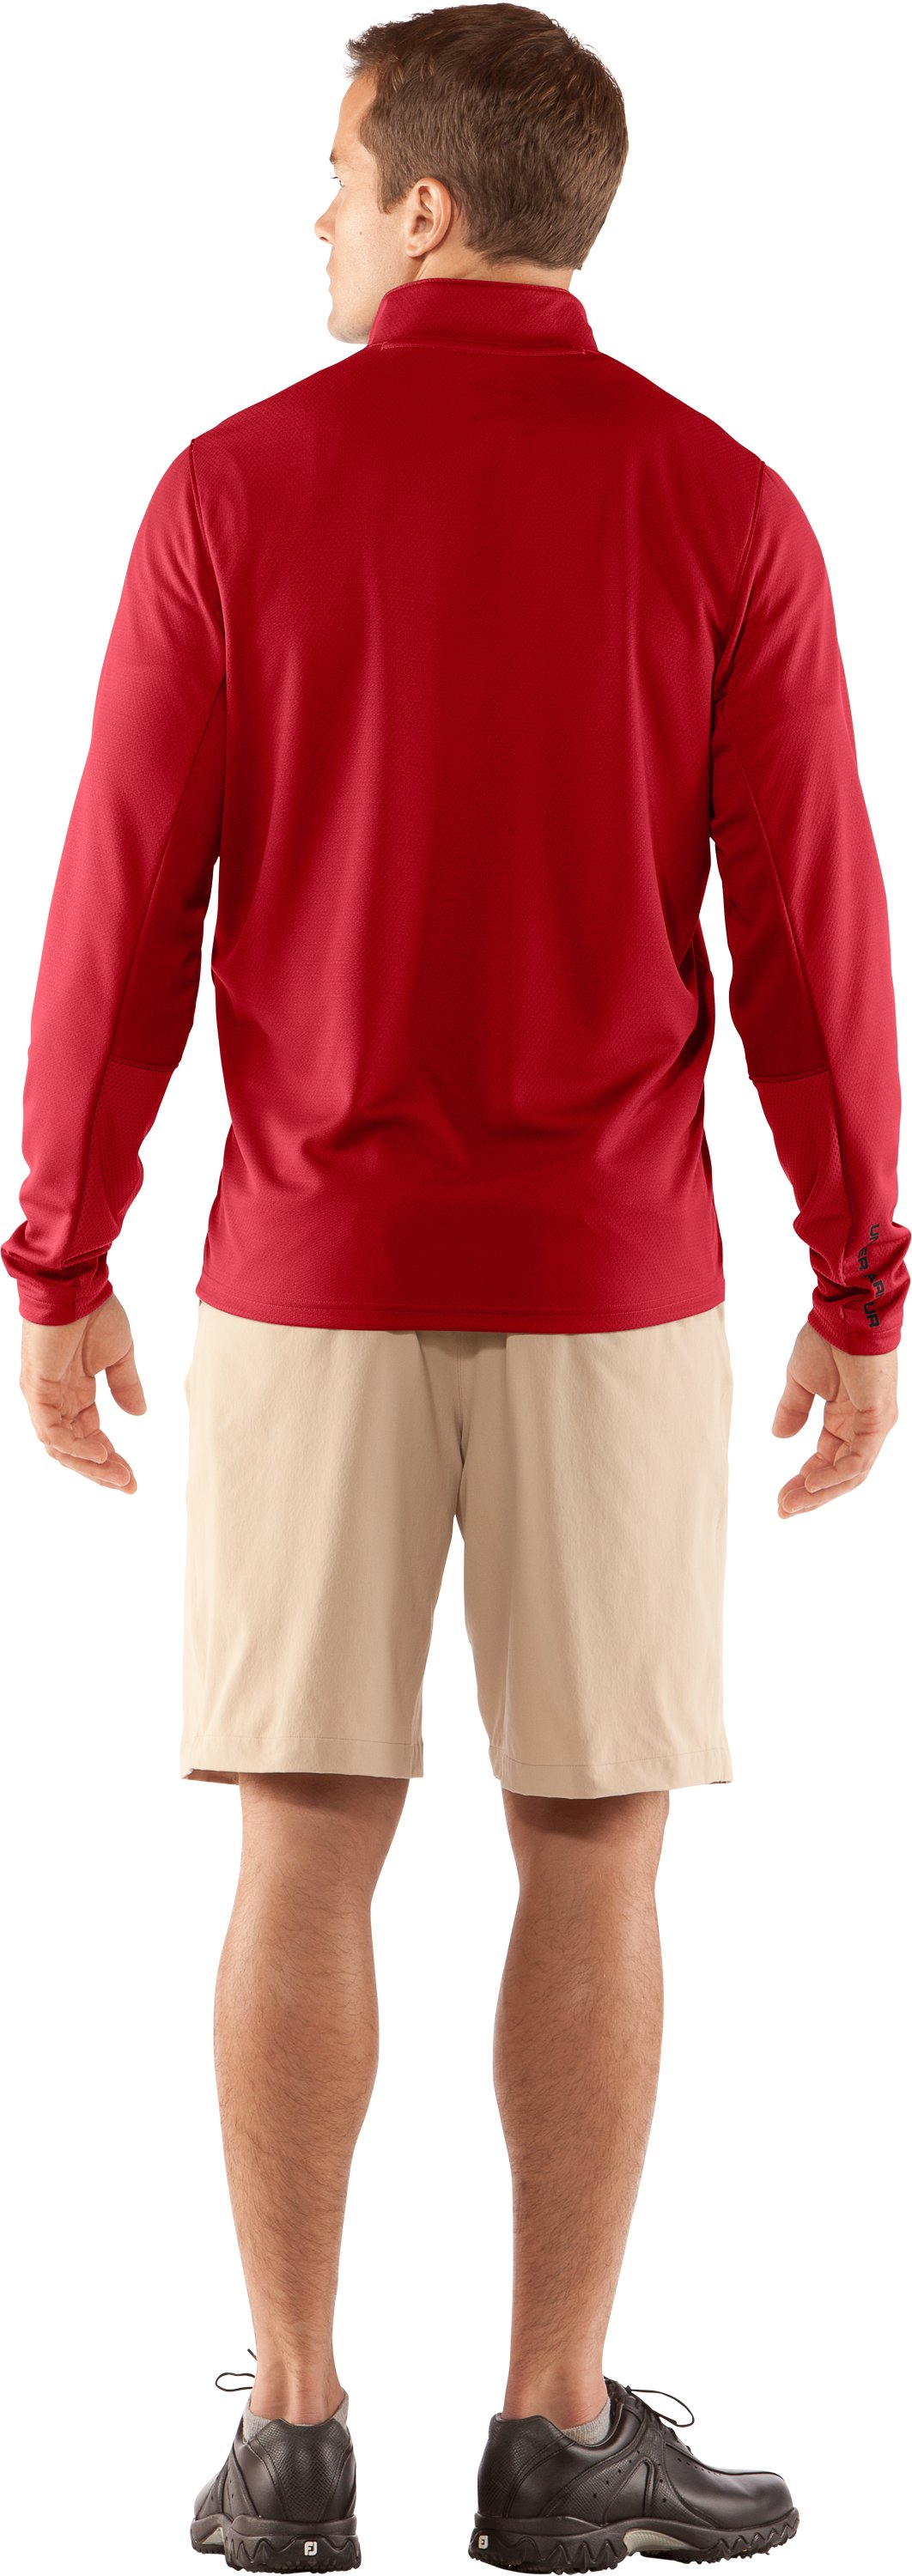 Men's AllSeasonGear® ¼ Zip Golf Jacket, Red, Back